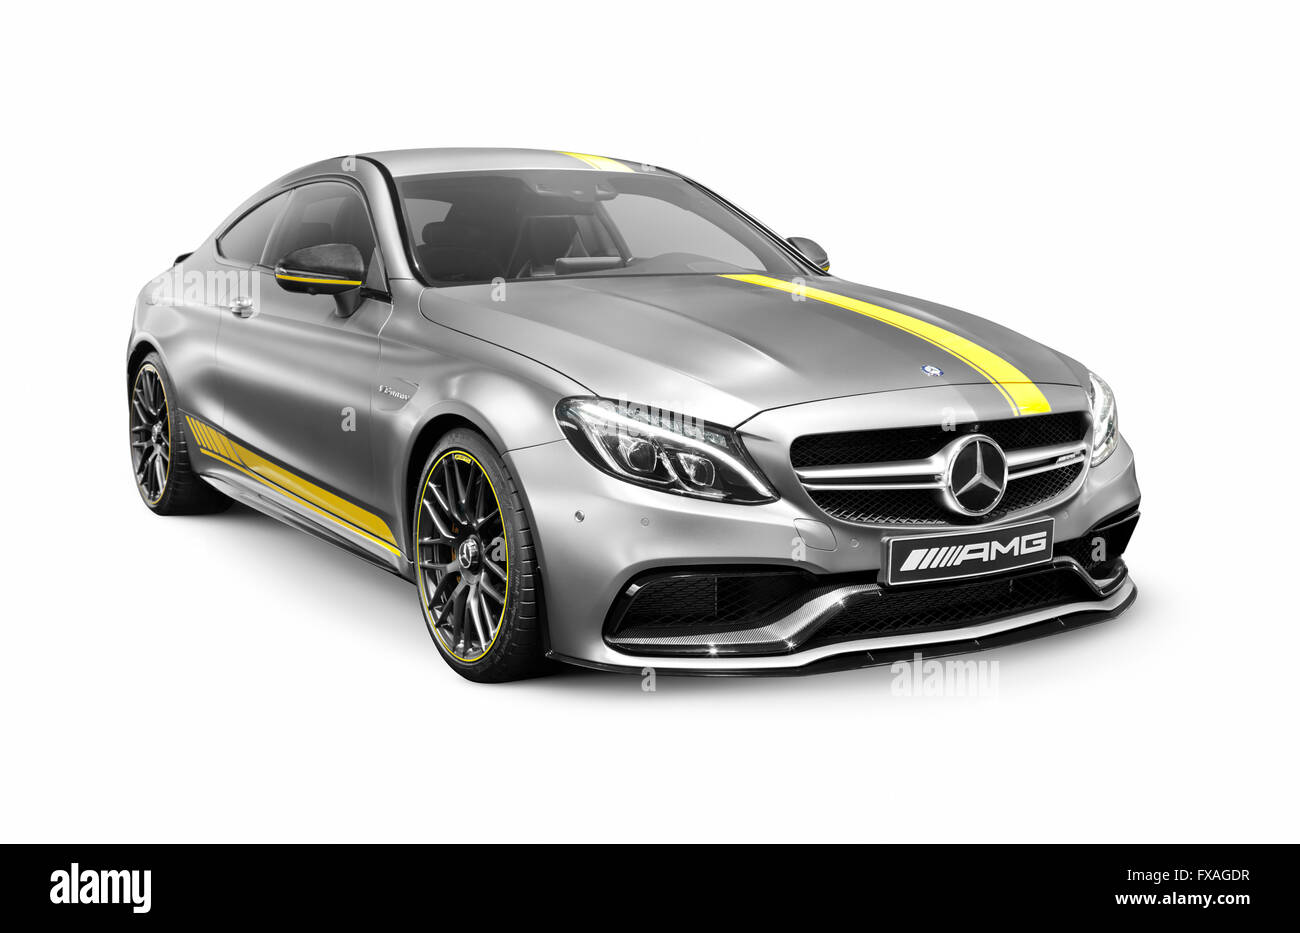 Silver 2016 Mercedes‑AMG C 63 S luxury sports car - Stock Image